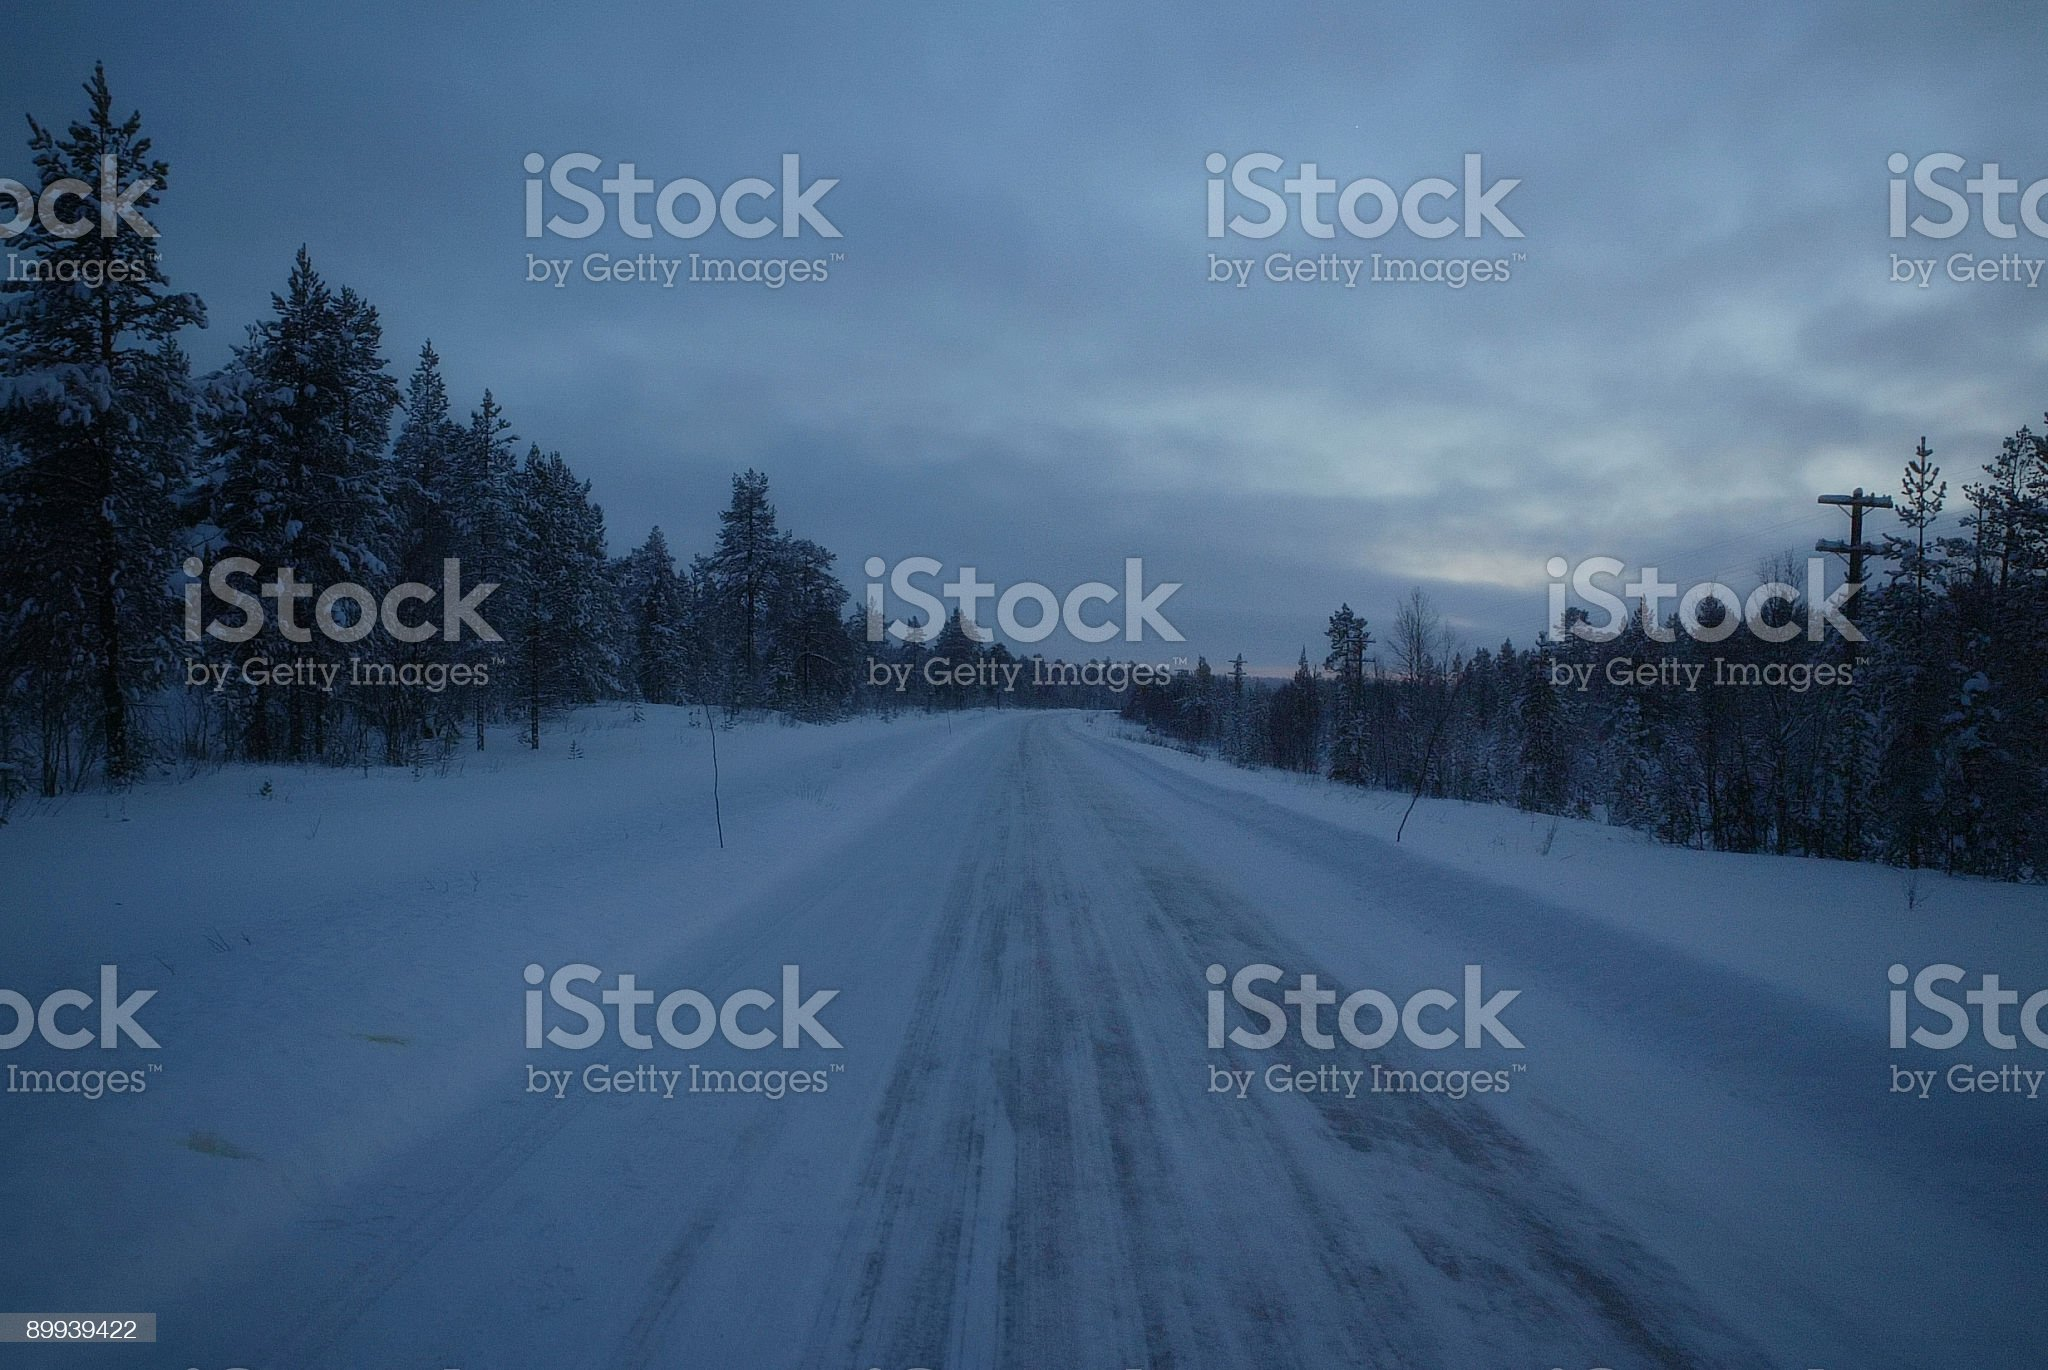 Lonely Winter Road Finland royalty-free stock photo